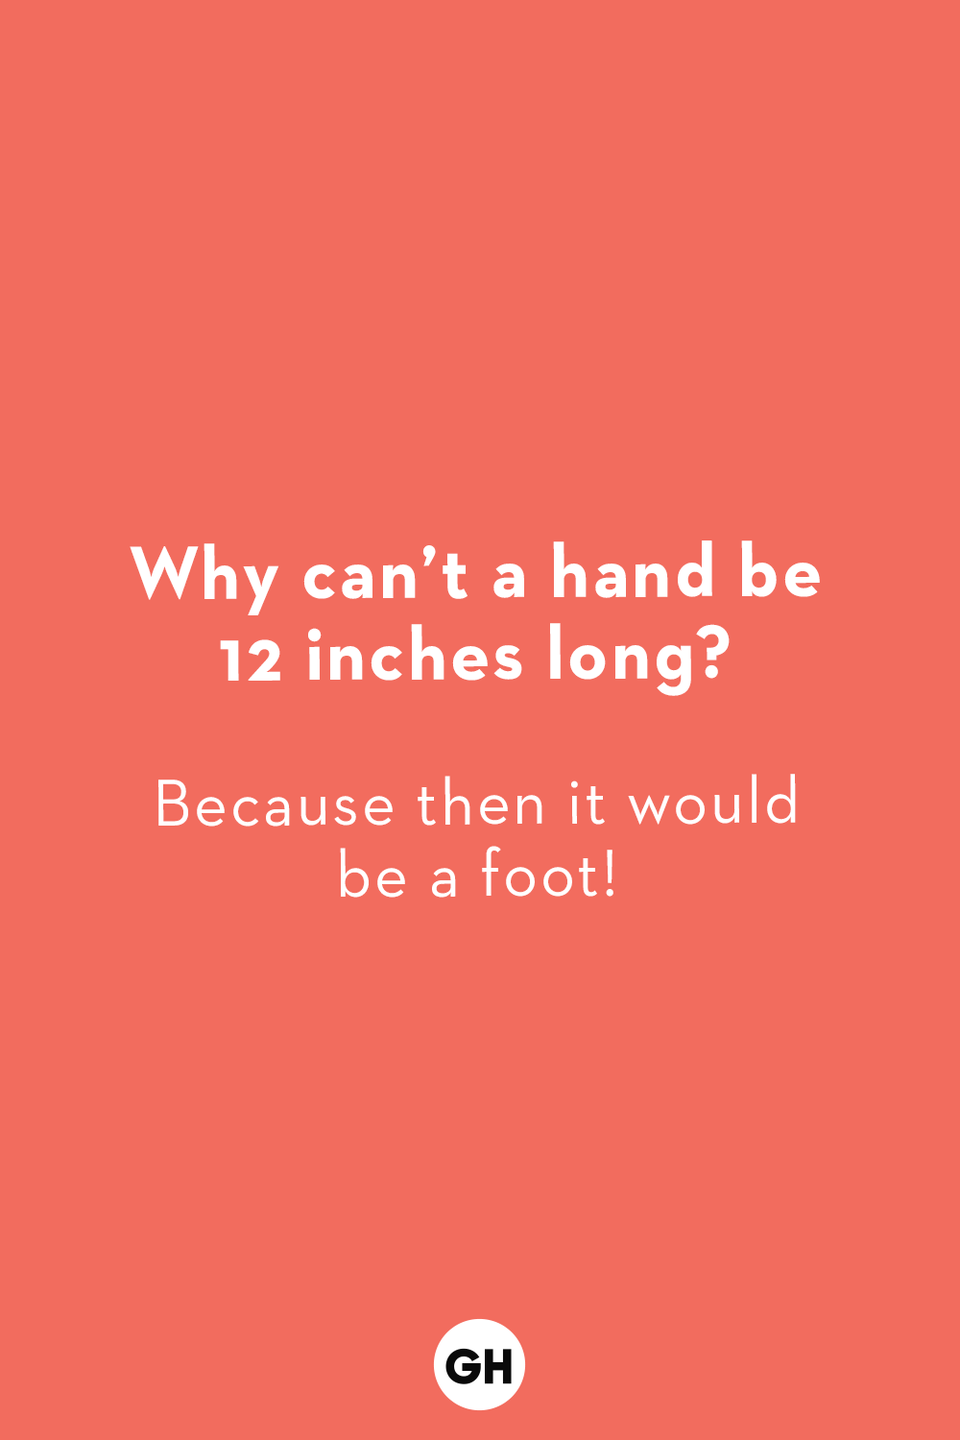 <p>Because then it would be a foot!</p>